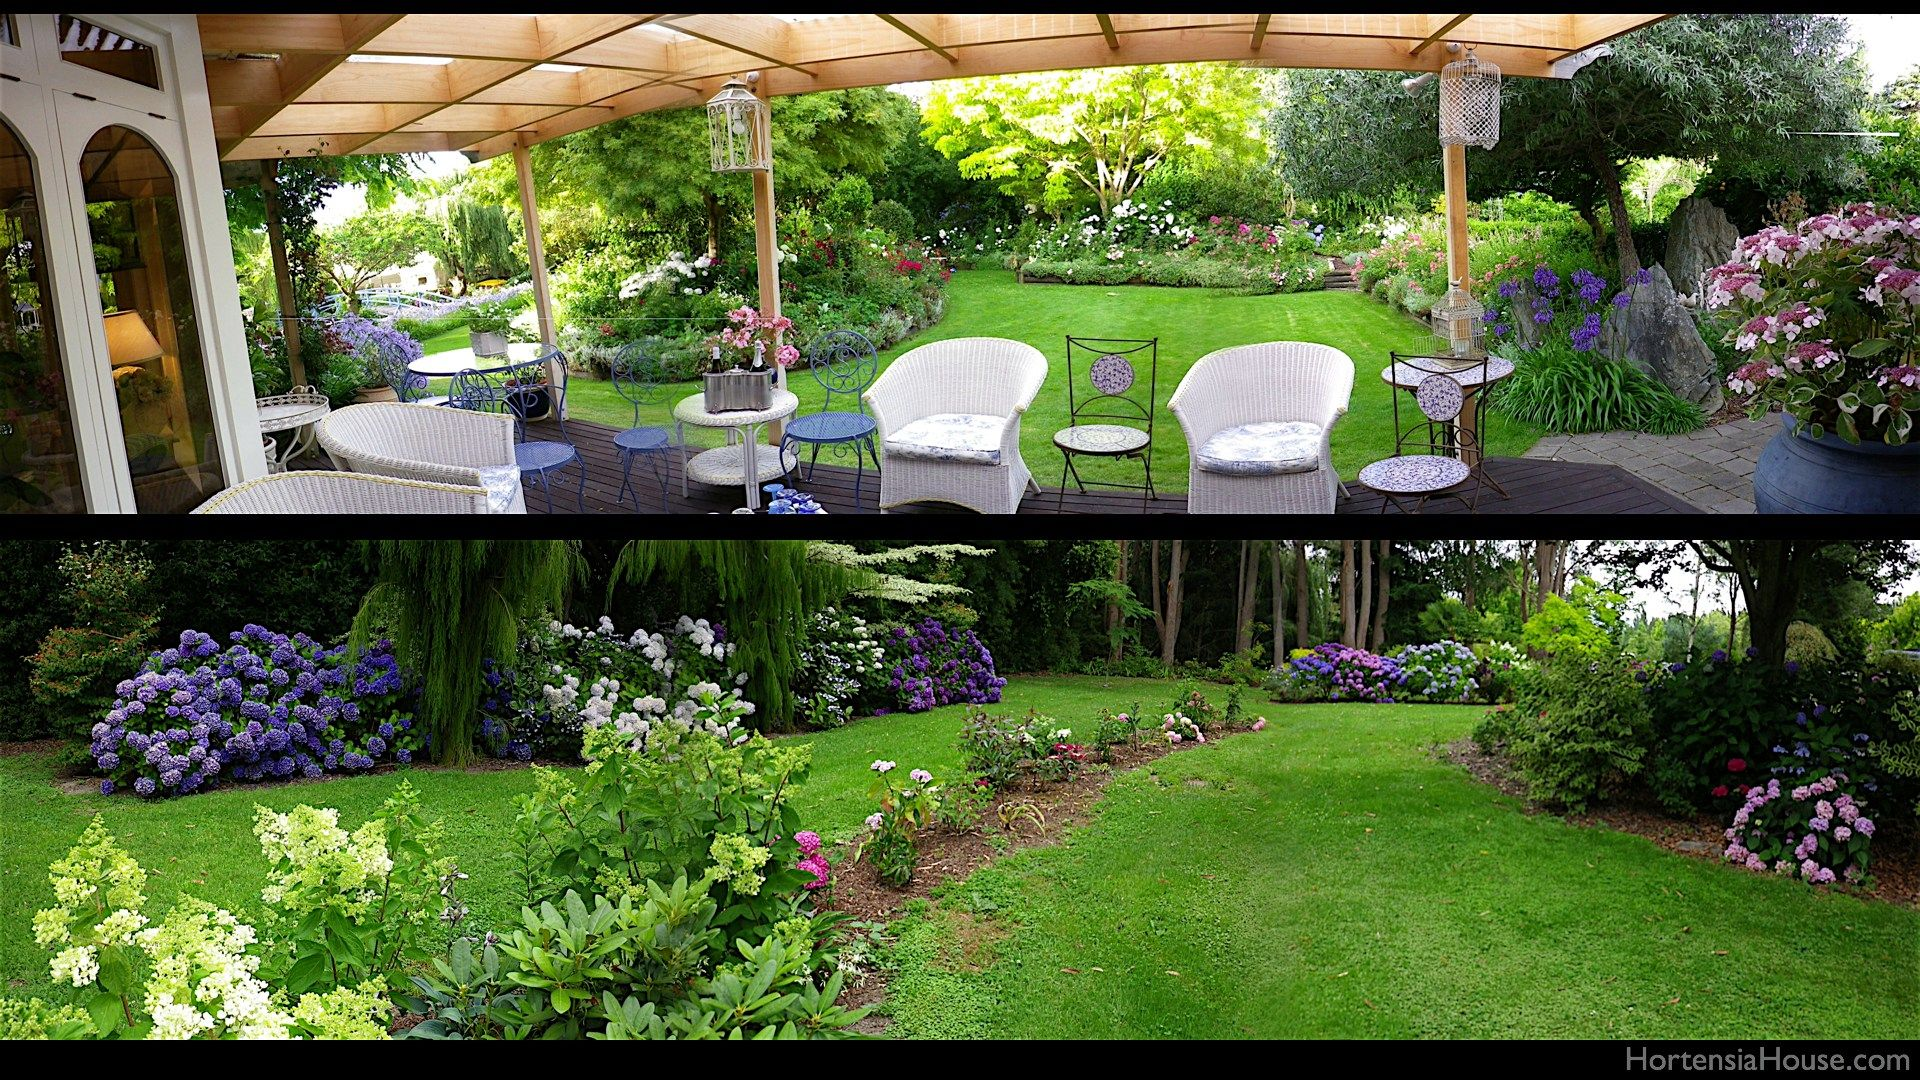 Hortensia House Garden BLenheim New Zealand Panoramas Photos - Back